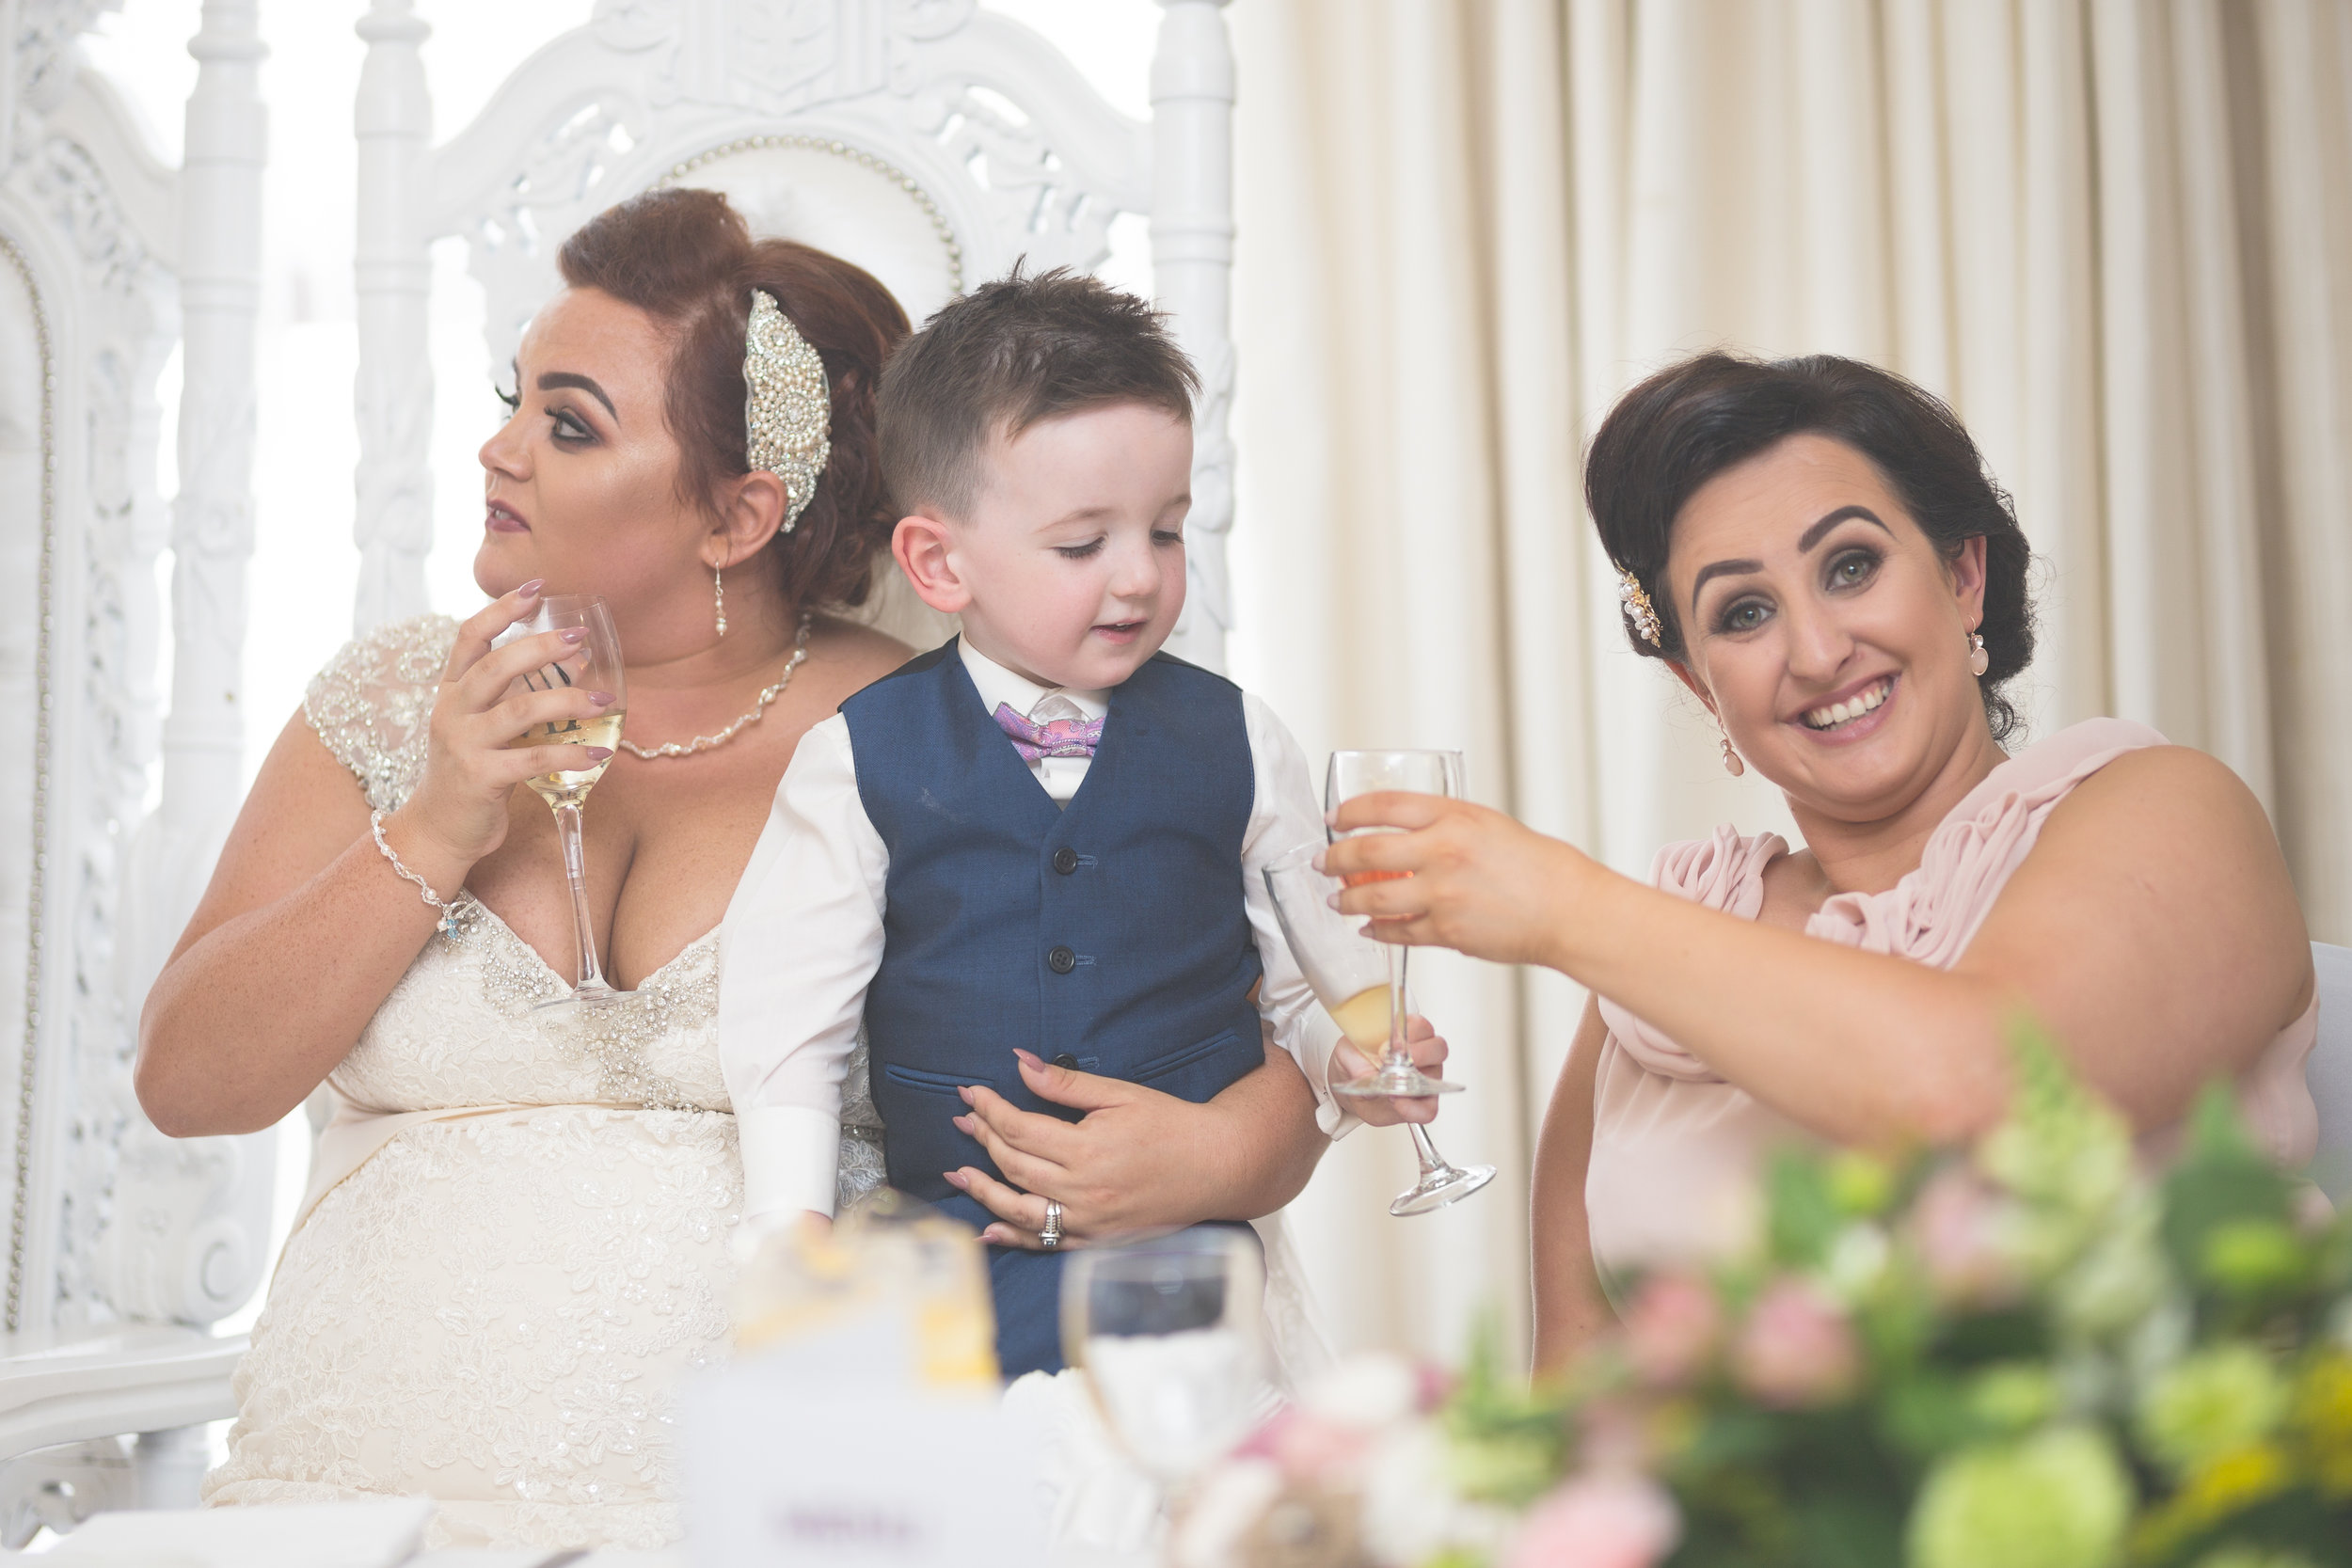 Antoinette & Stephen - Speeches | Brian McEwan Photography | Wedding Photographer Northern Ireland 83.jpg